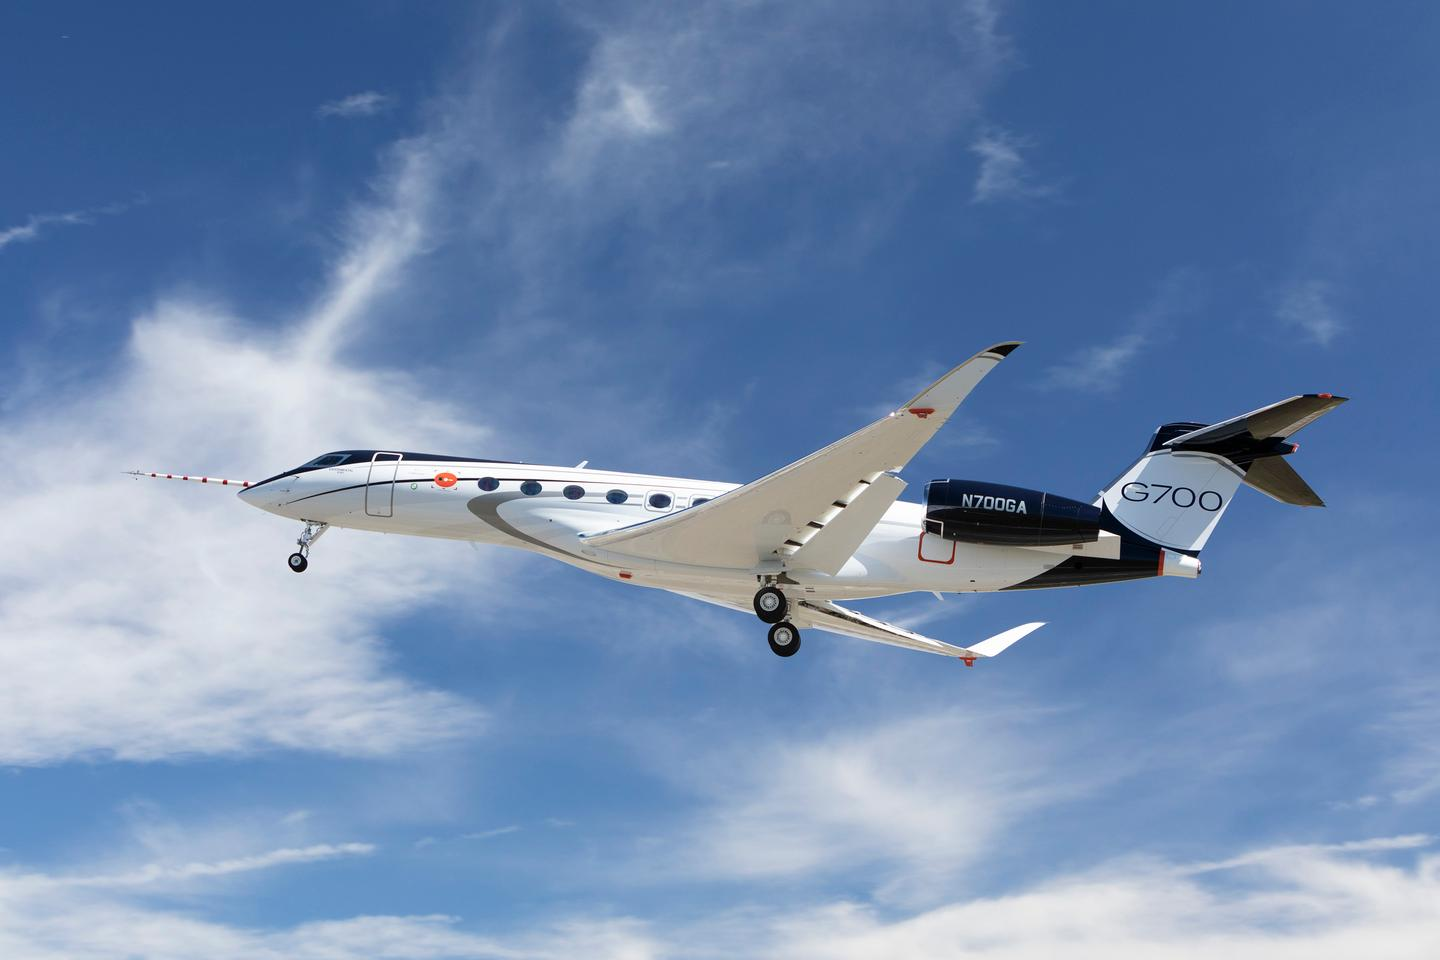 The G700 is powered by two Rolls-Royce Pearl 700 engines